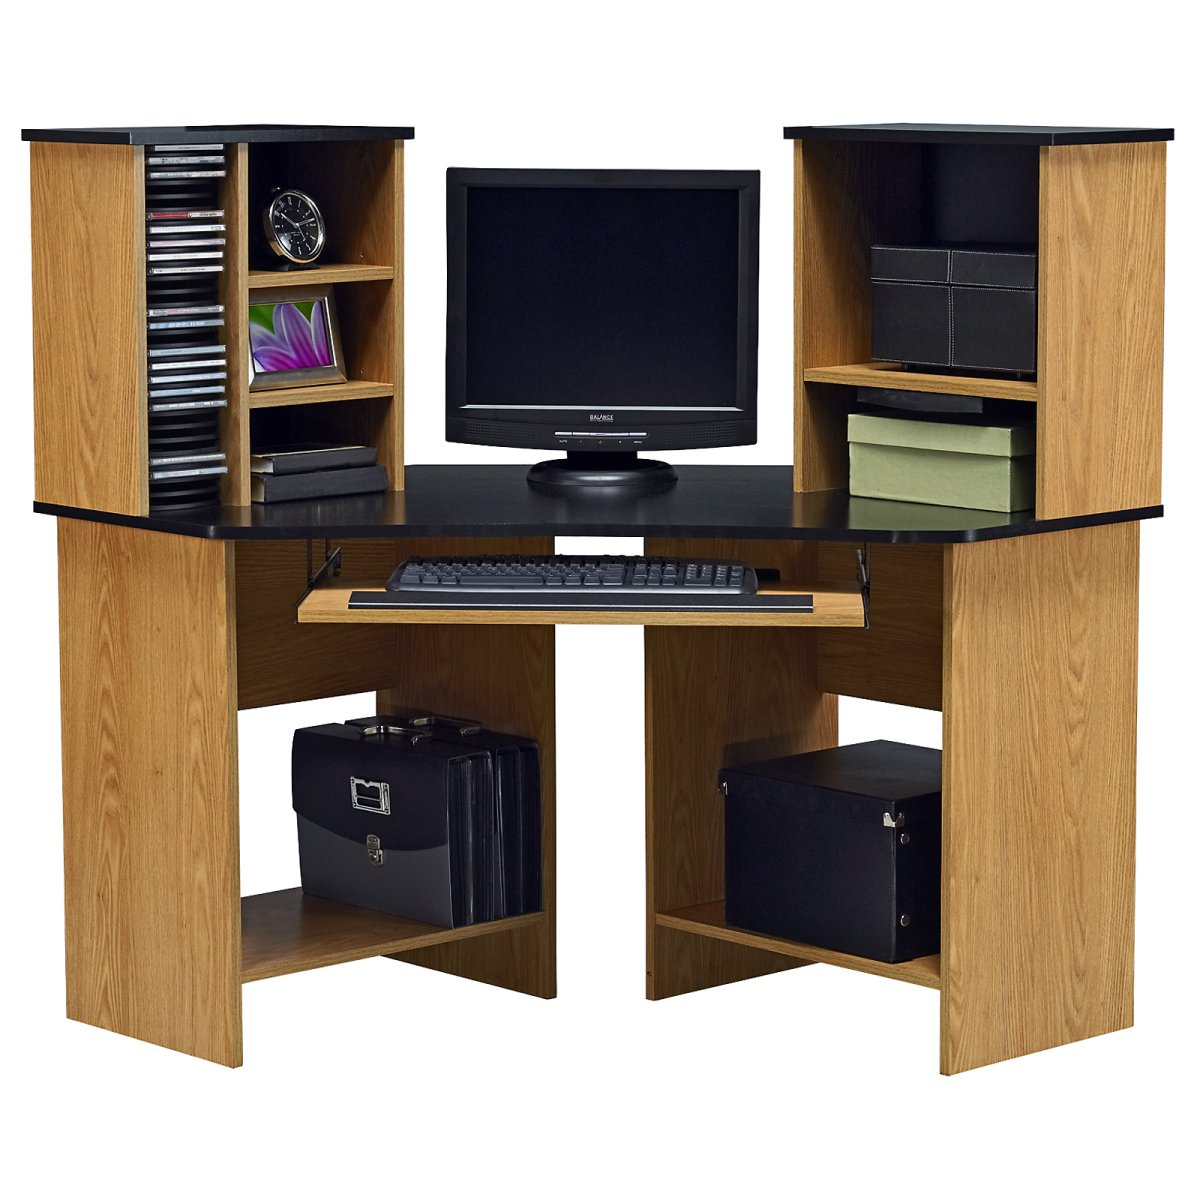 Sophisticated Cabinet Computer Cd Rack Provides Ideal Space For Device : Simple Minimalist Cabinet Computer Cd Rack Design Black Bag And Box